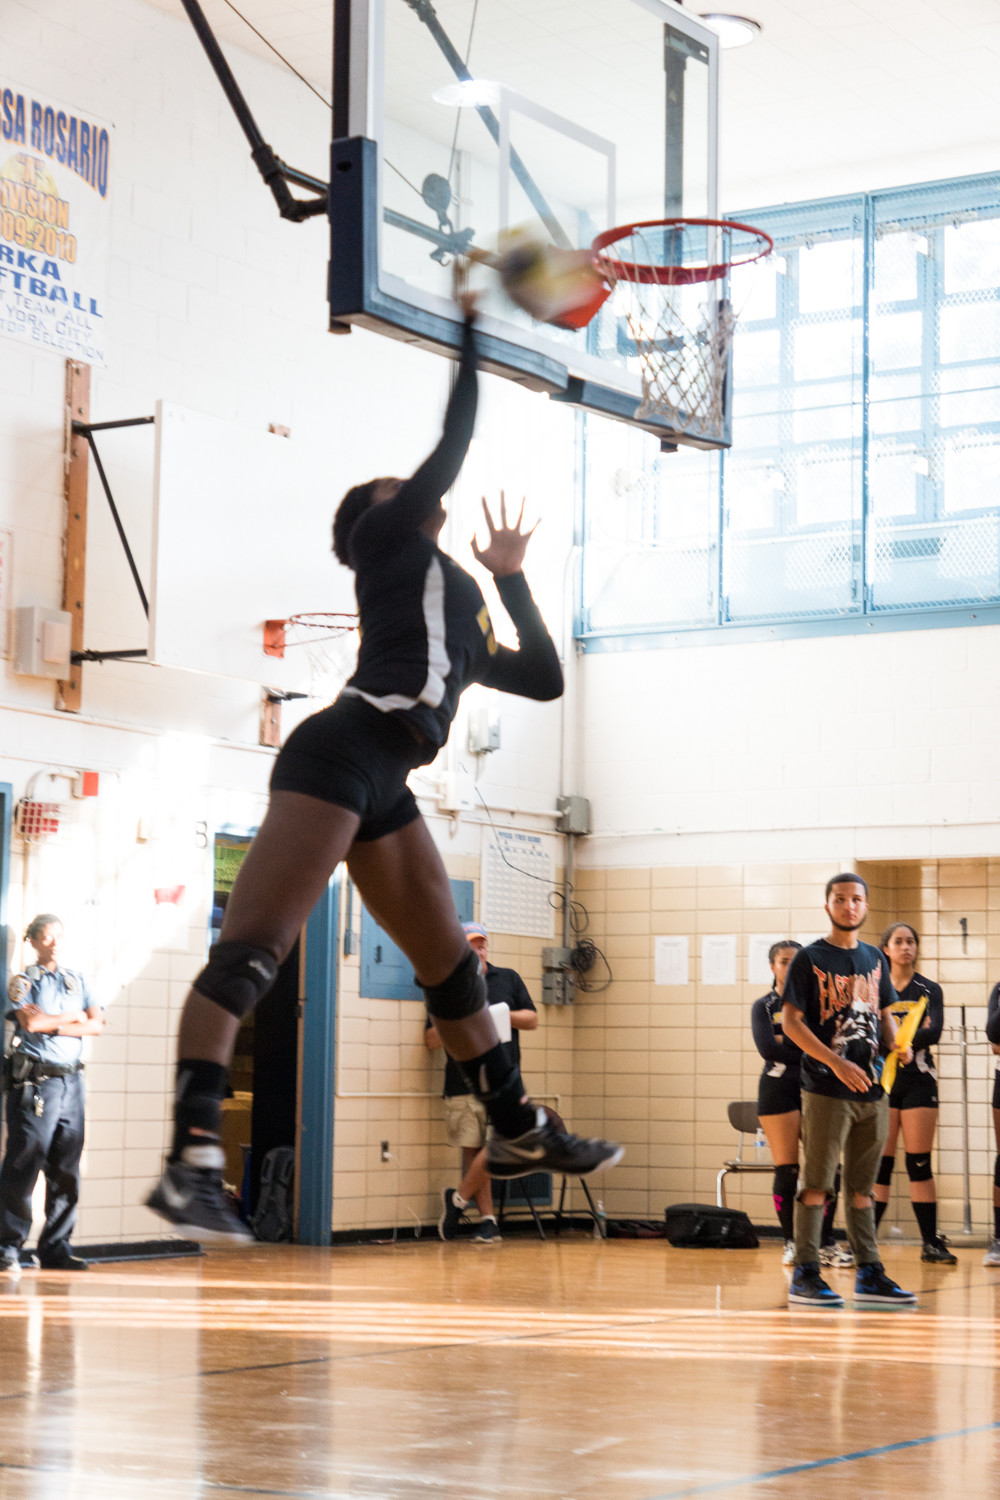 Riverdale/Kingsbridge Academy's Sommer Code, shown here working her volleyball magic versus Dodge, registered eight kills in the Lady Tigers' season-opening victory over the Panthers.